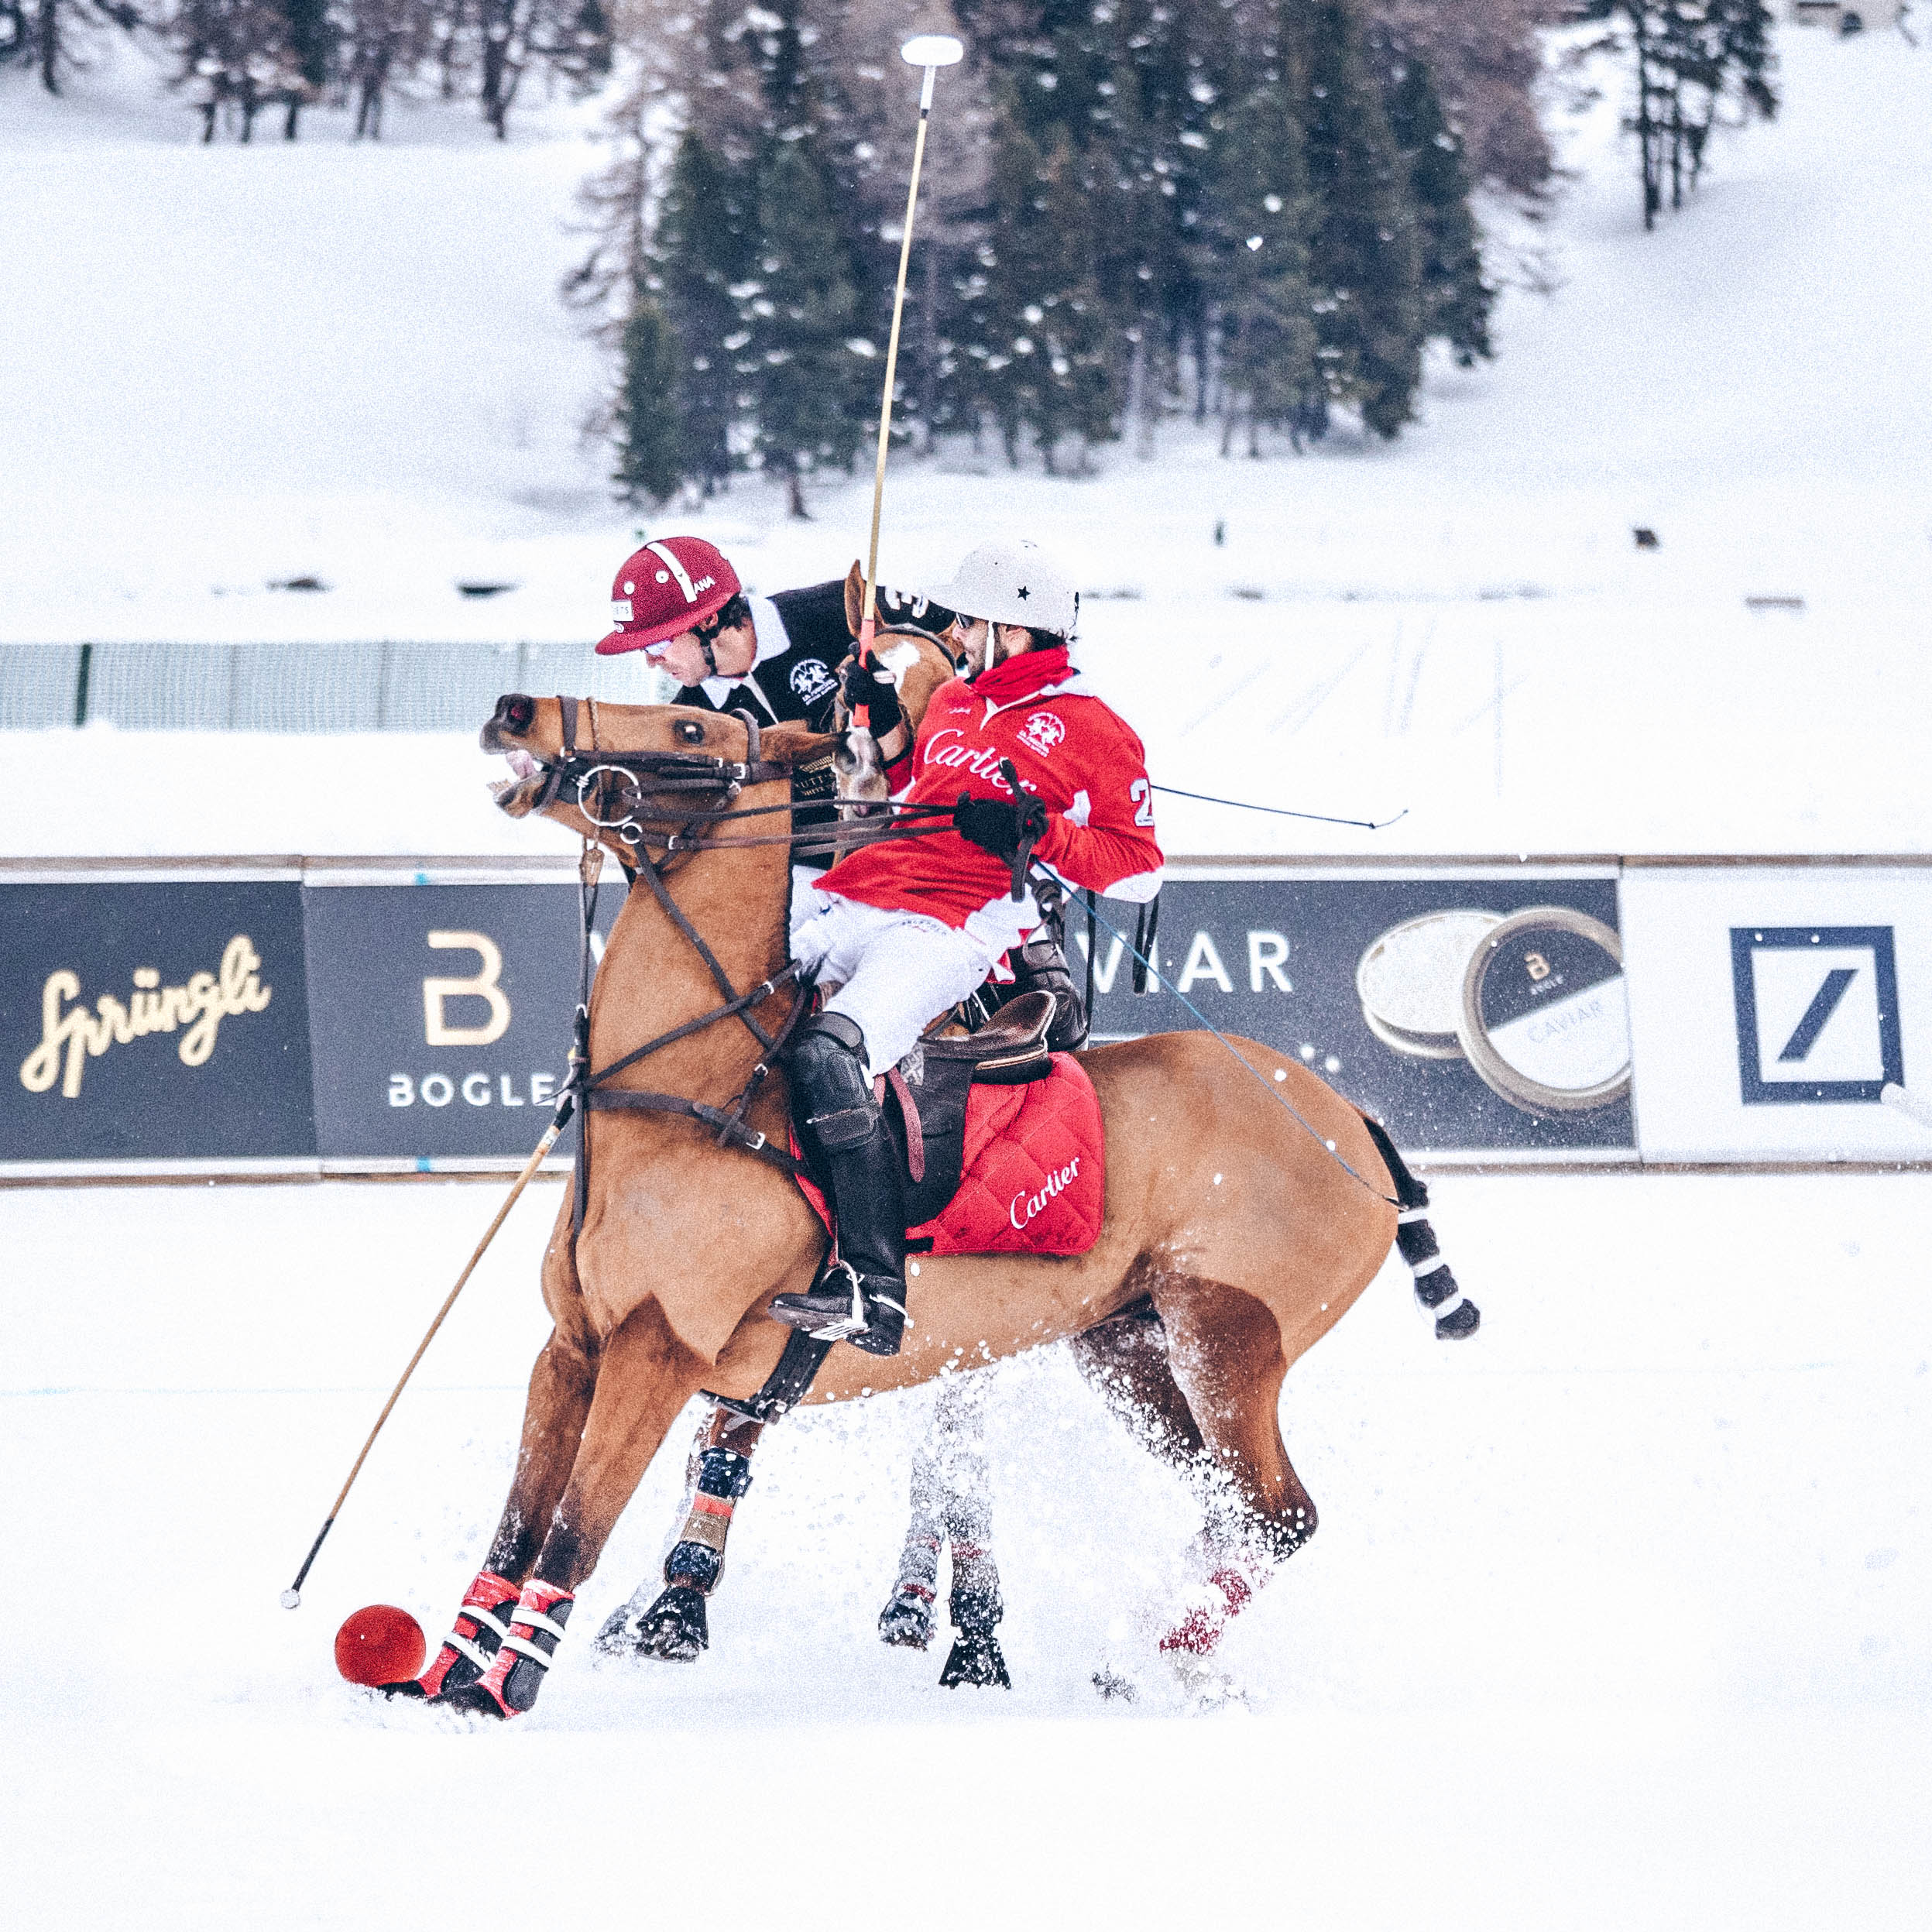 snow polo teams Cartier and badrutts at the st. Moritz World Cup